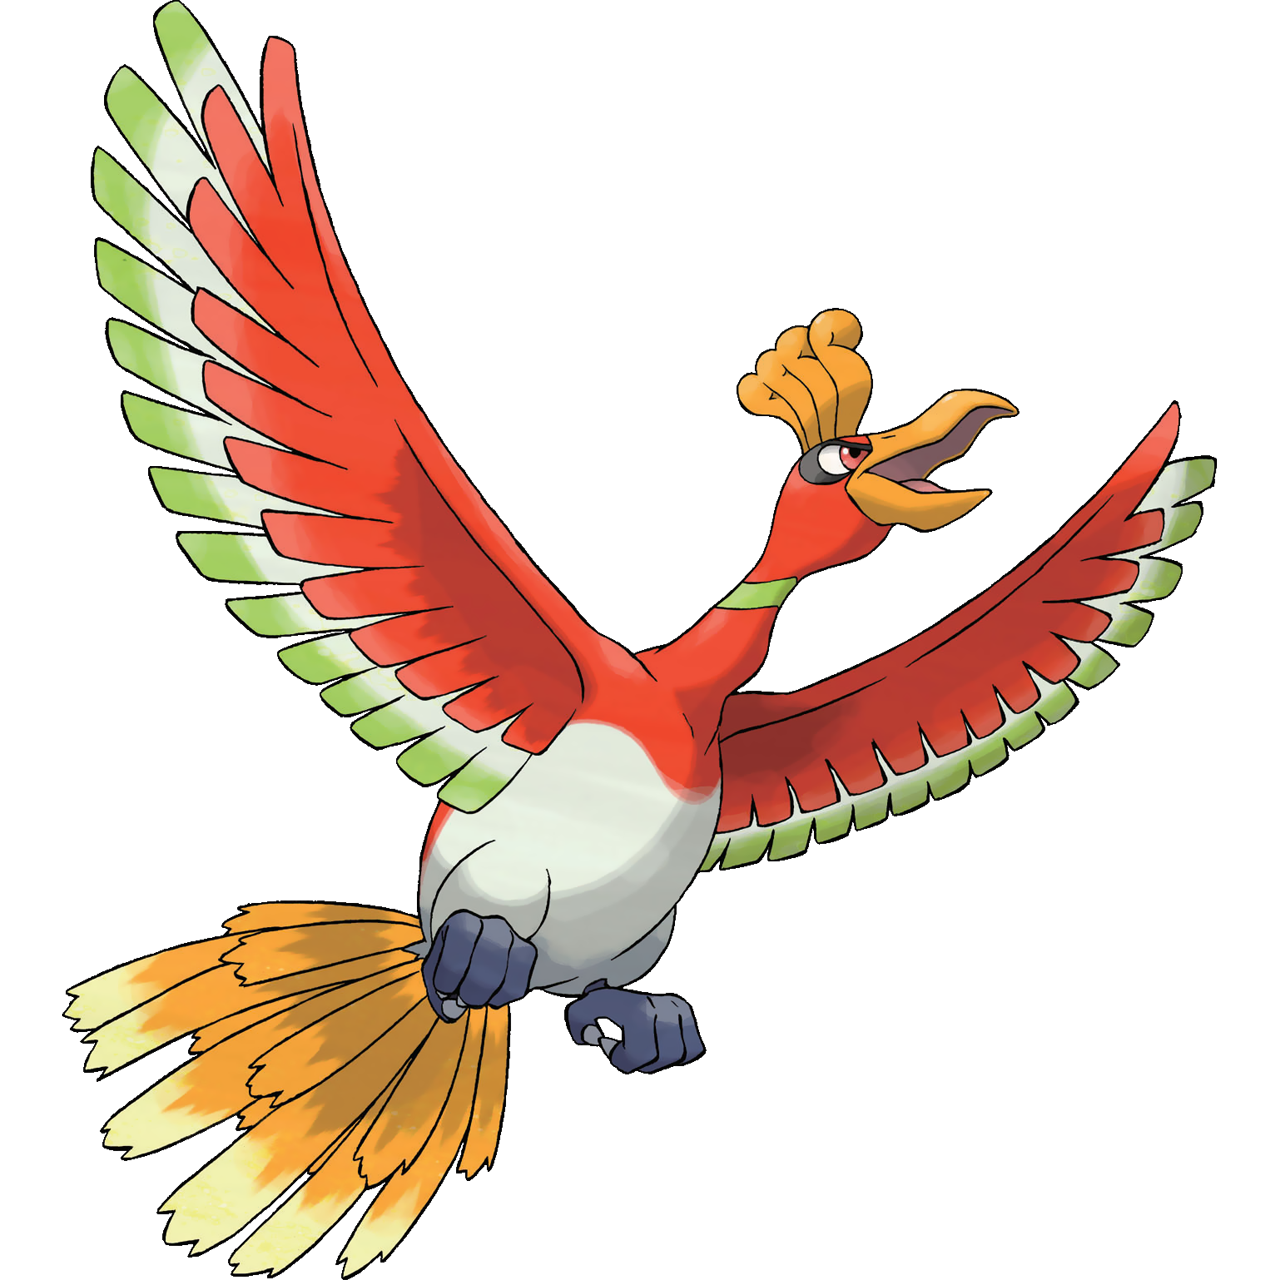 Official Ho-Oh art